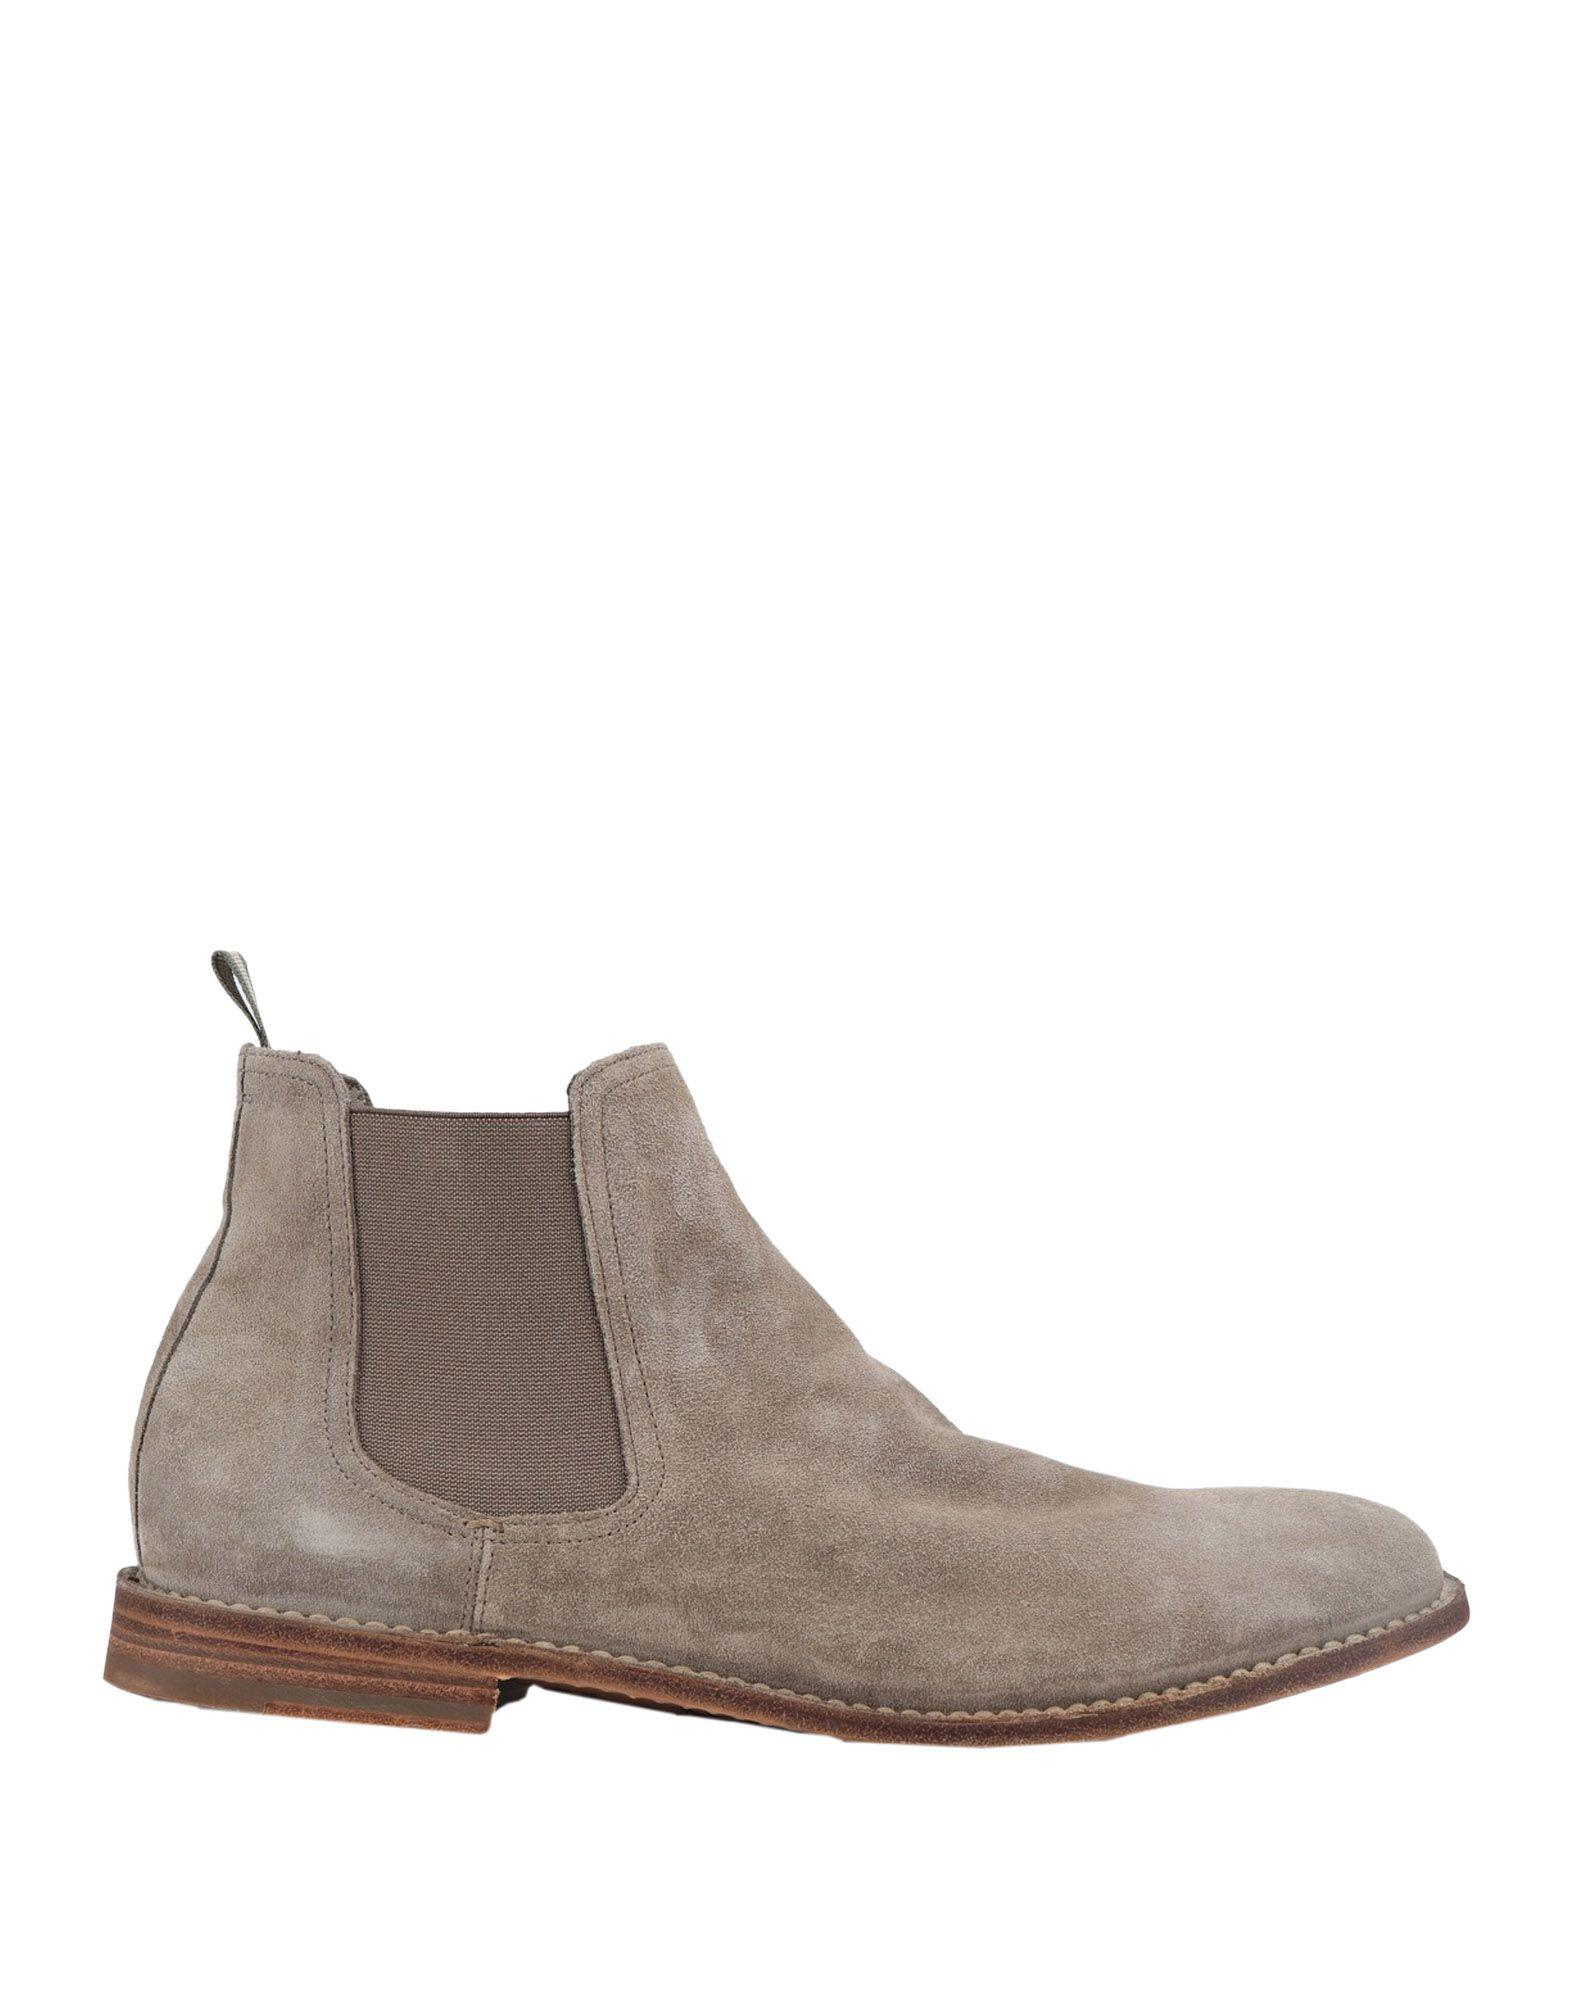 07fa86f015e6f Lyst - Officine Creative Ankle Boots in Brown for Men